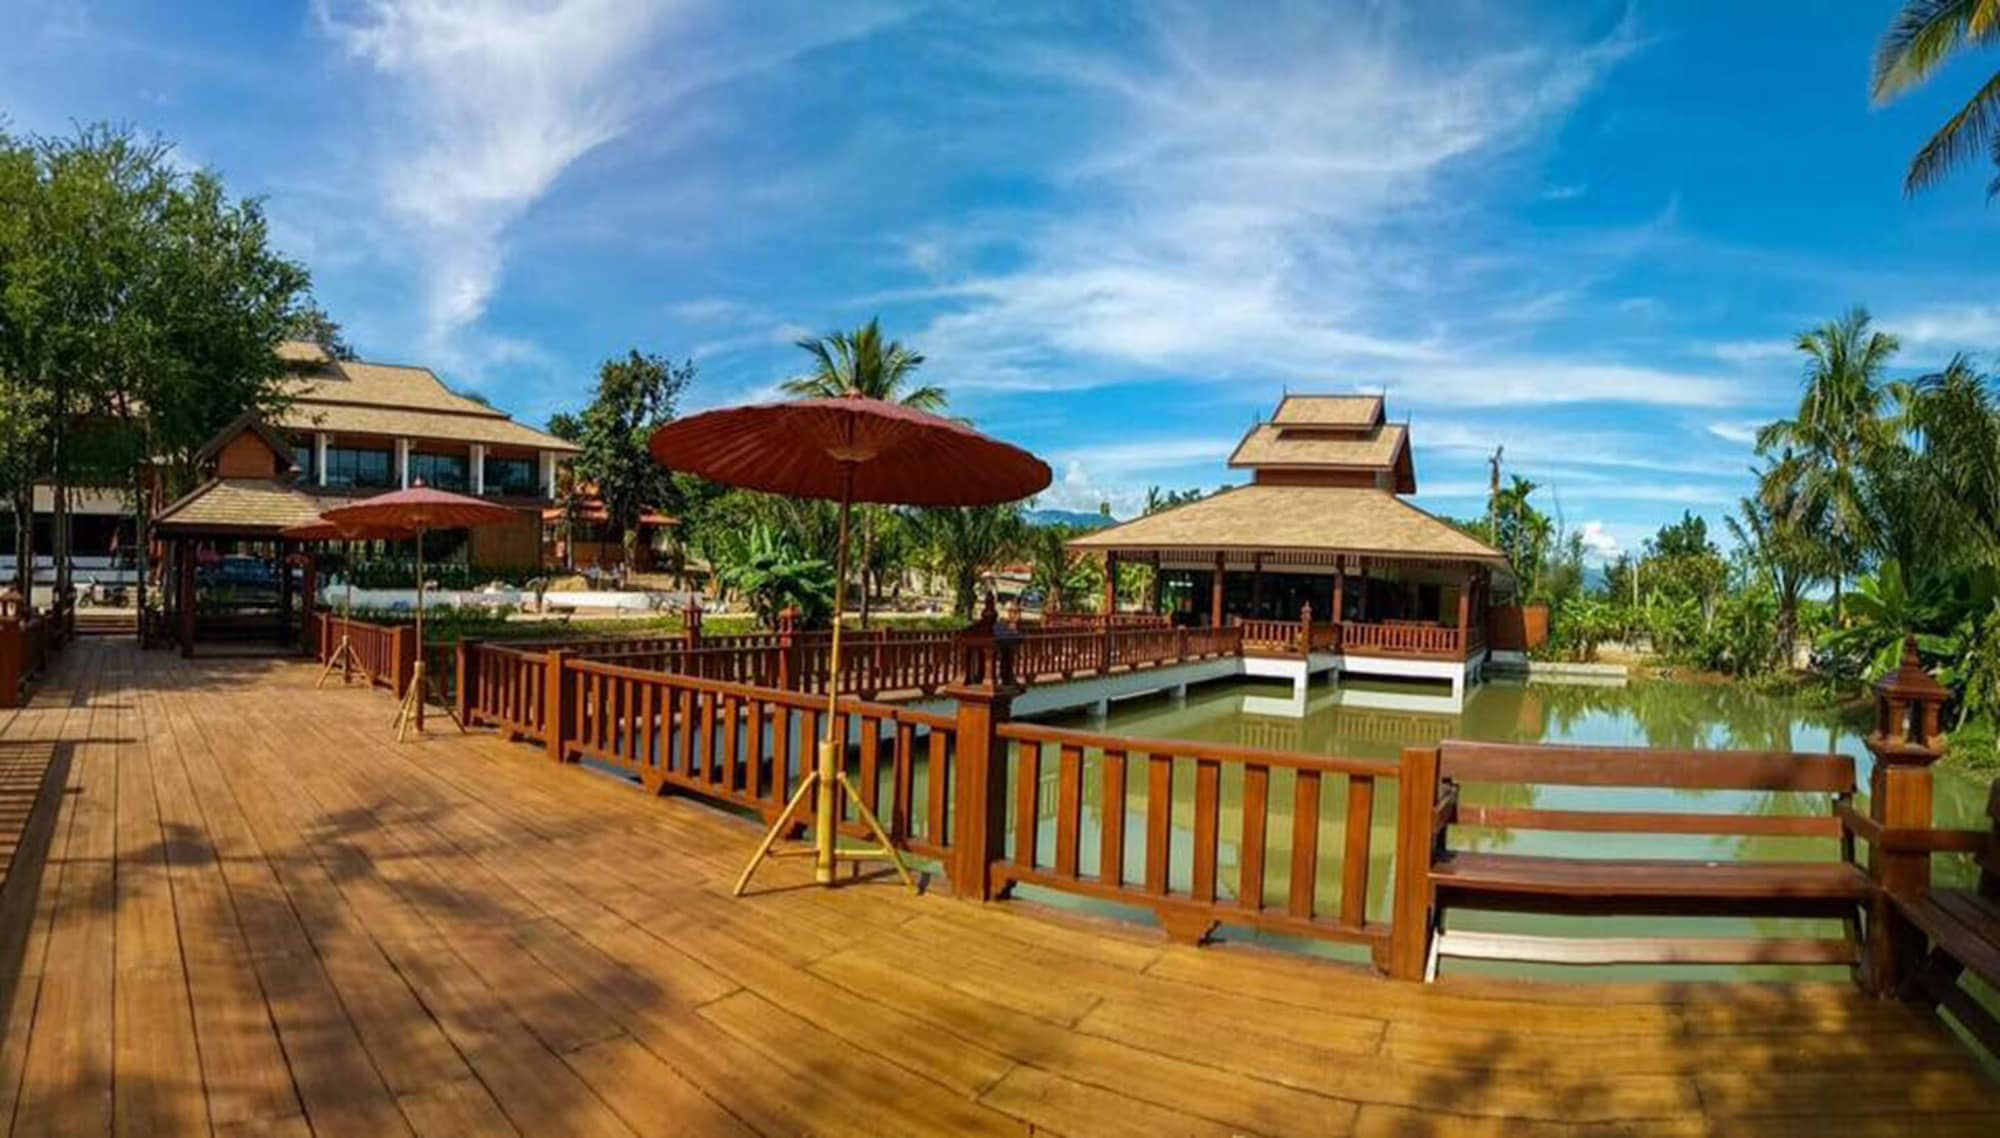 Moon Terrace Resort & Hotel, Mae Rim